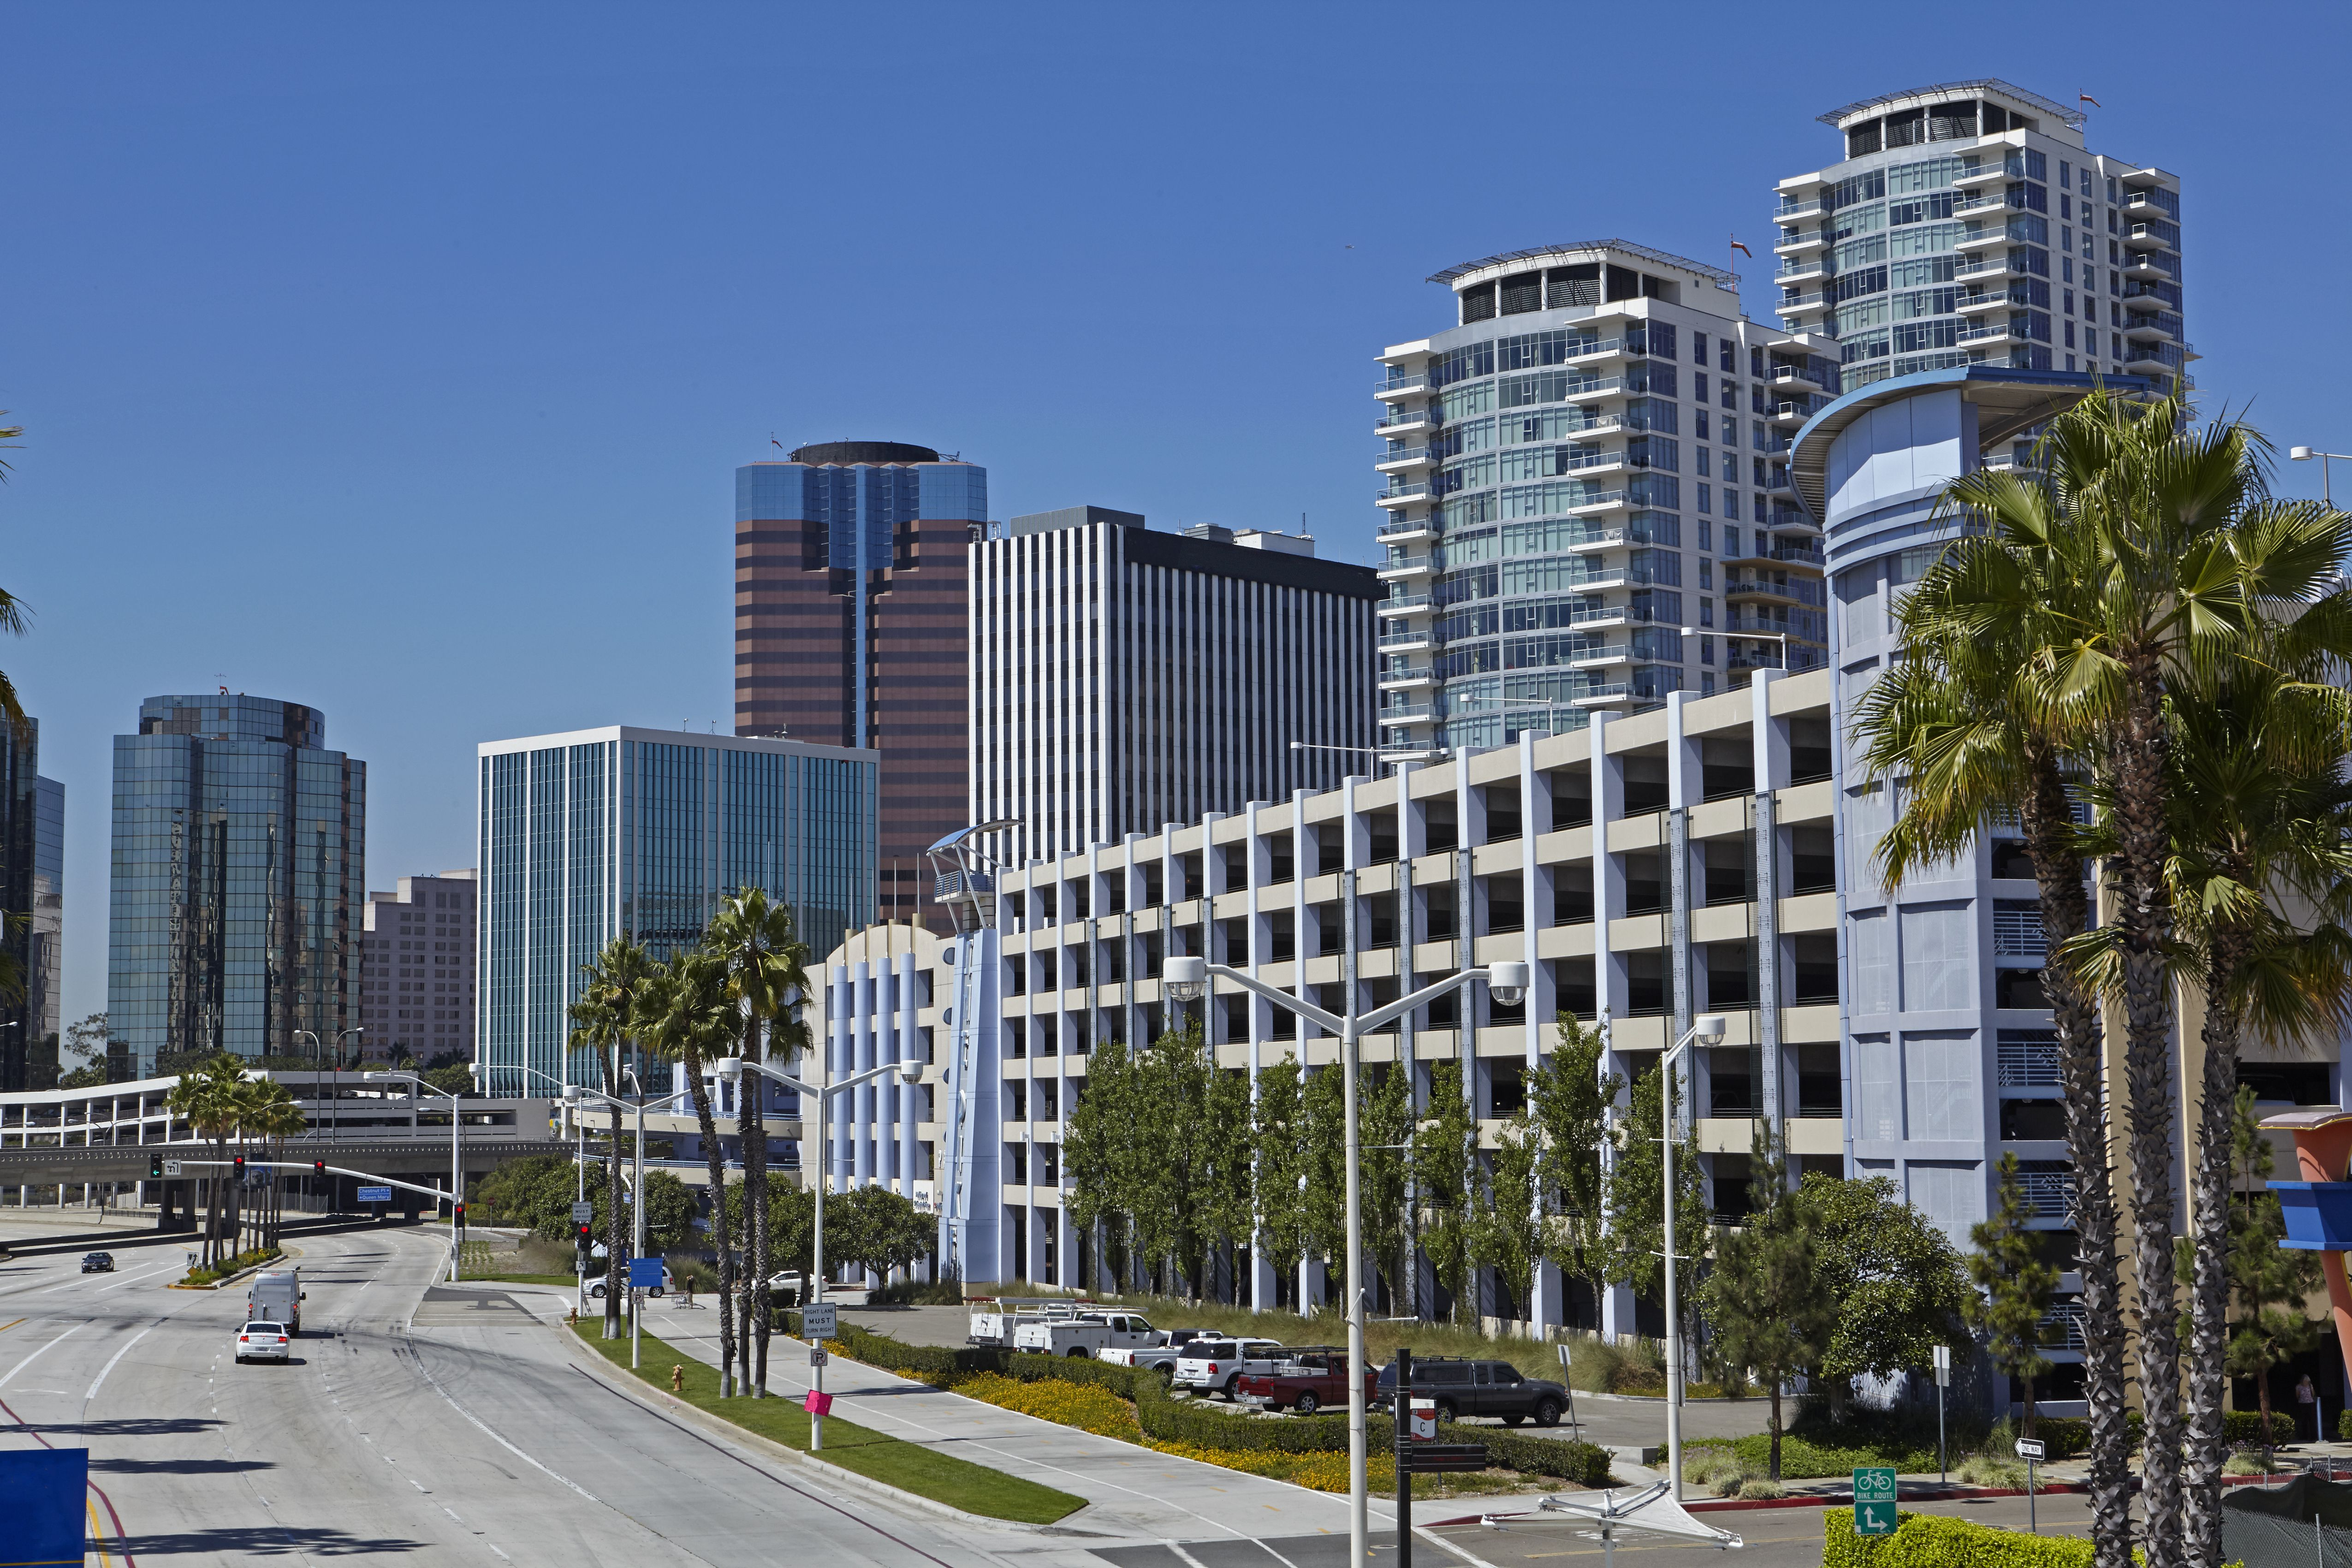 Downtown Long Beach